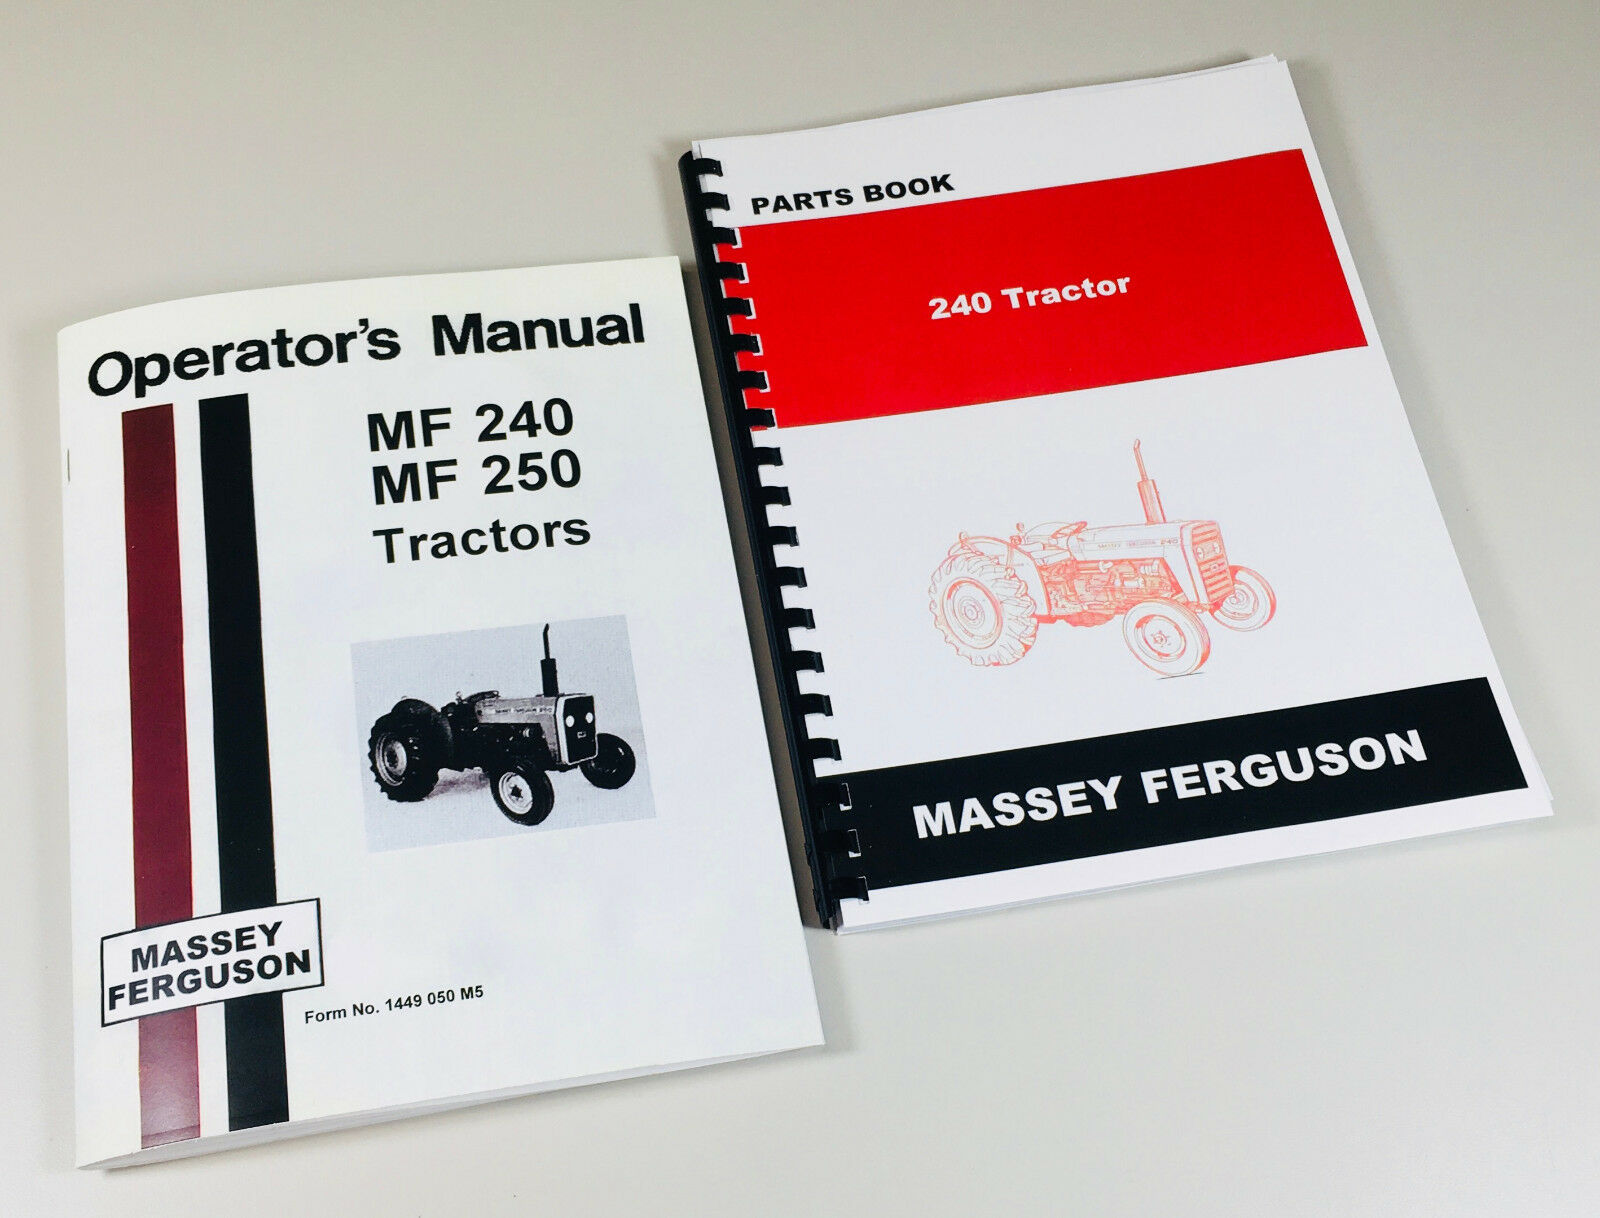 massey ferguson 240 parts diagram rv cable and satellite wiring mf tractor operators manual catalog ebay complete manuals